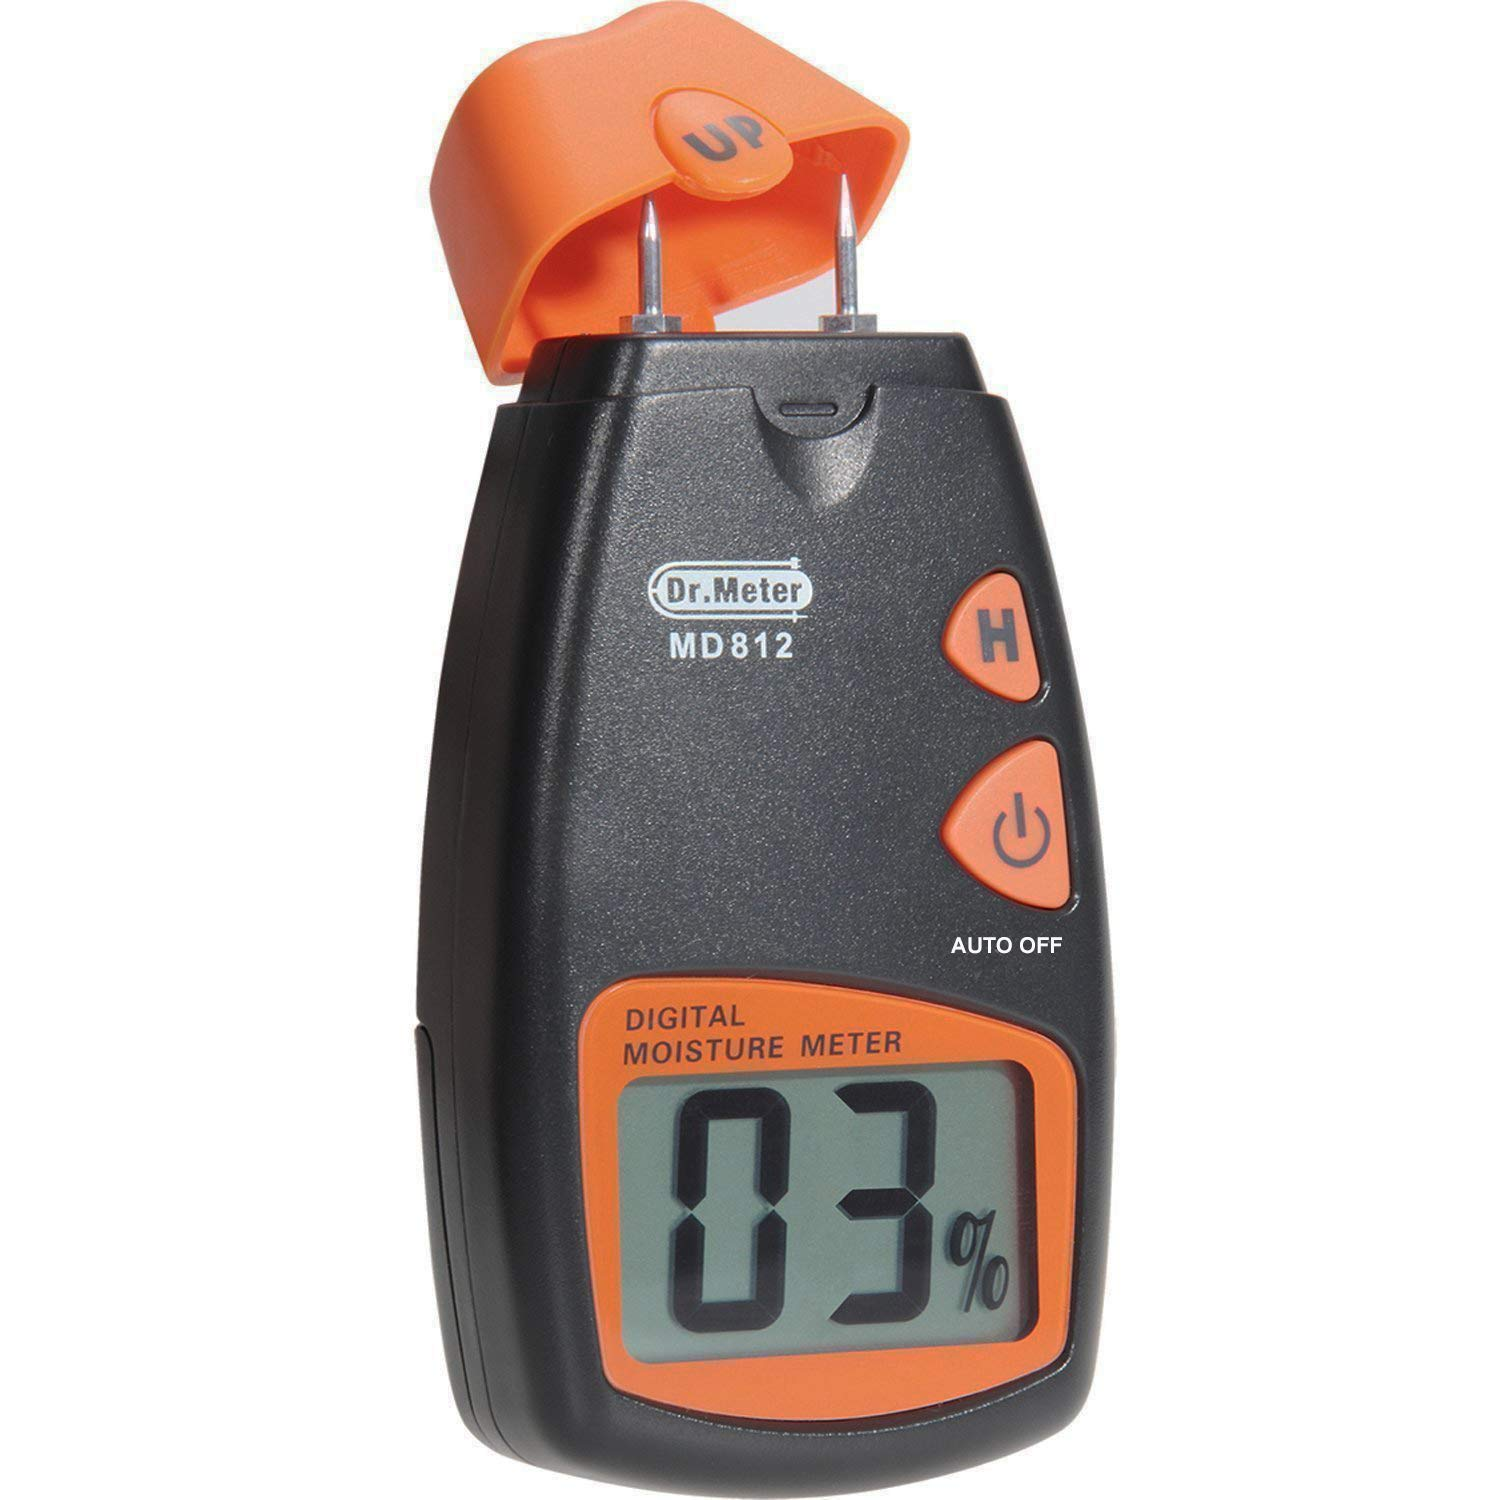 Wood Moisture Meter Dr.meter Digital Portable Wood Water Moisture Tester Digital LCD Display with 2 Spare Sensor Pins and one 9V Battery Both Included Range 5% 40% Accuracy 1% MD812